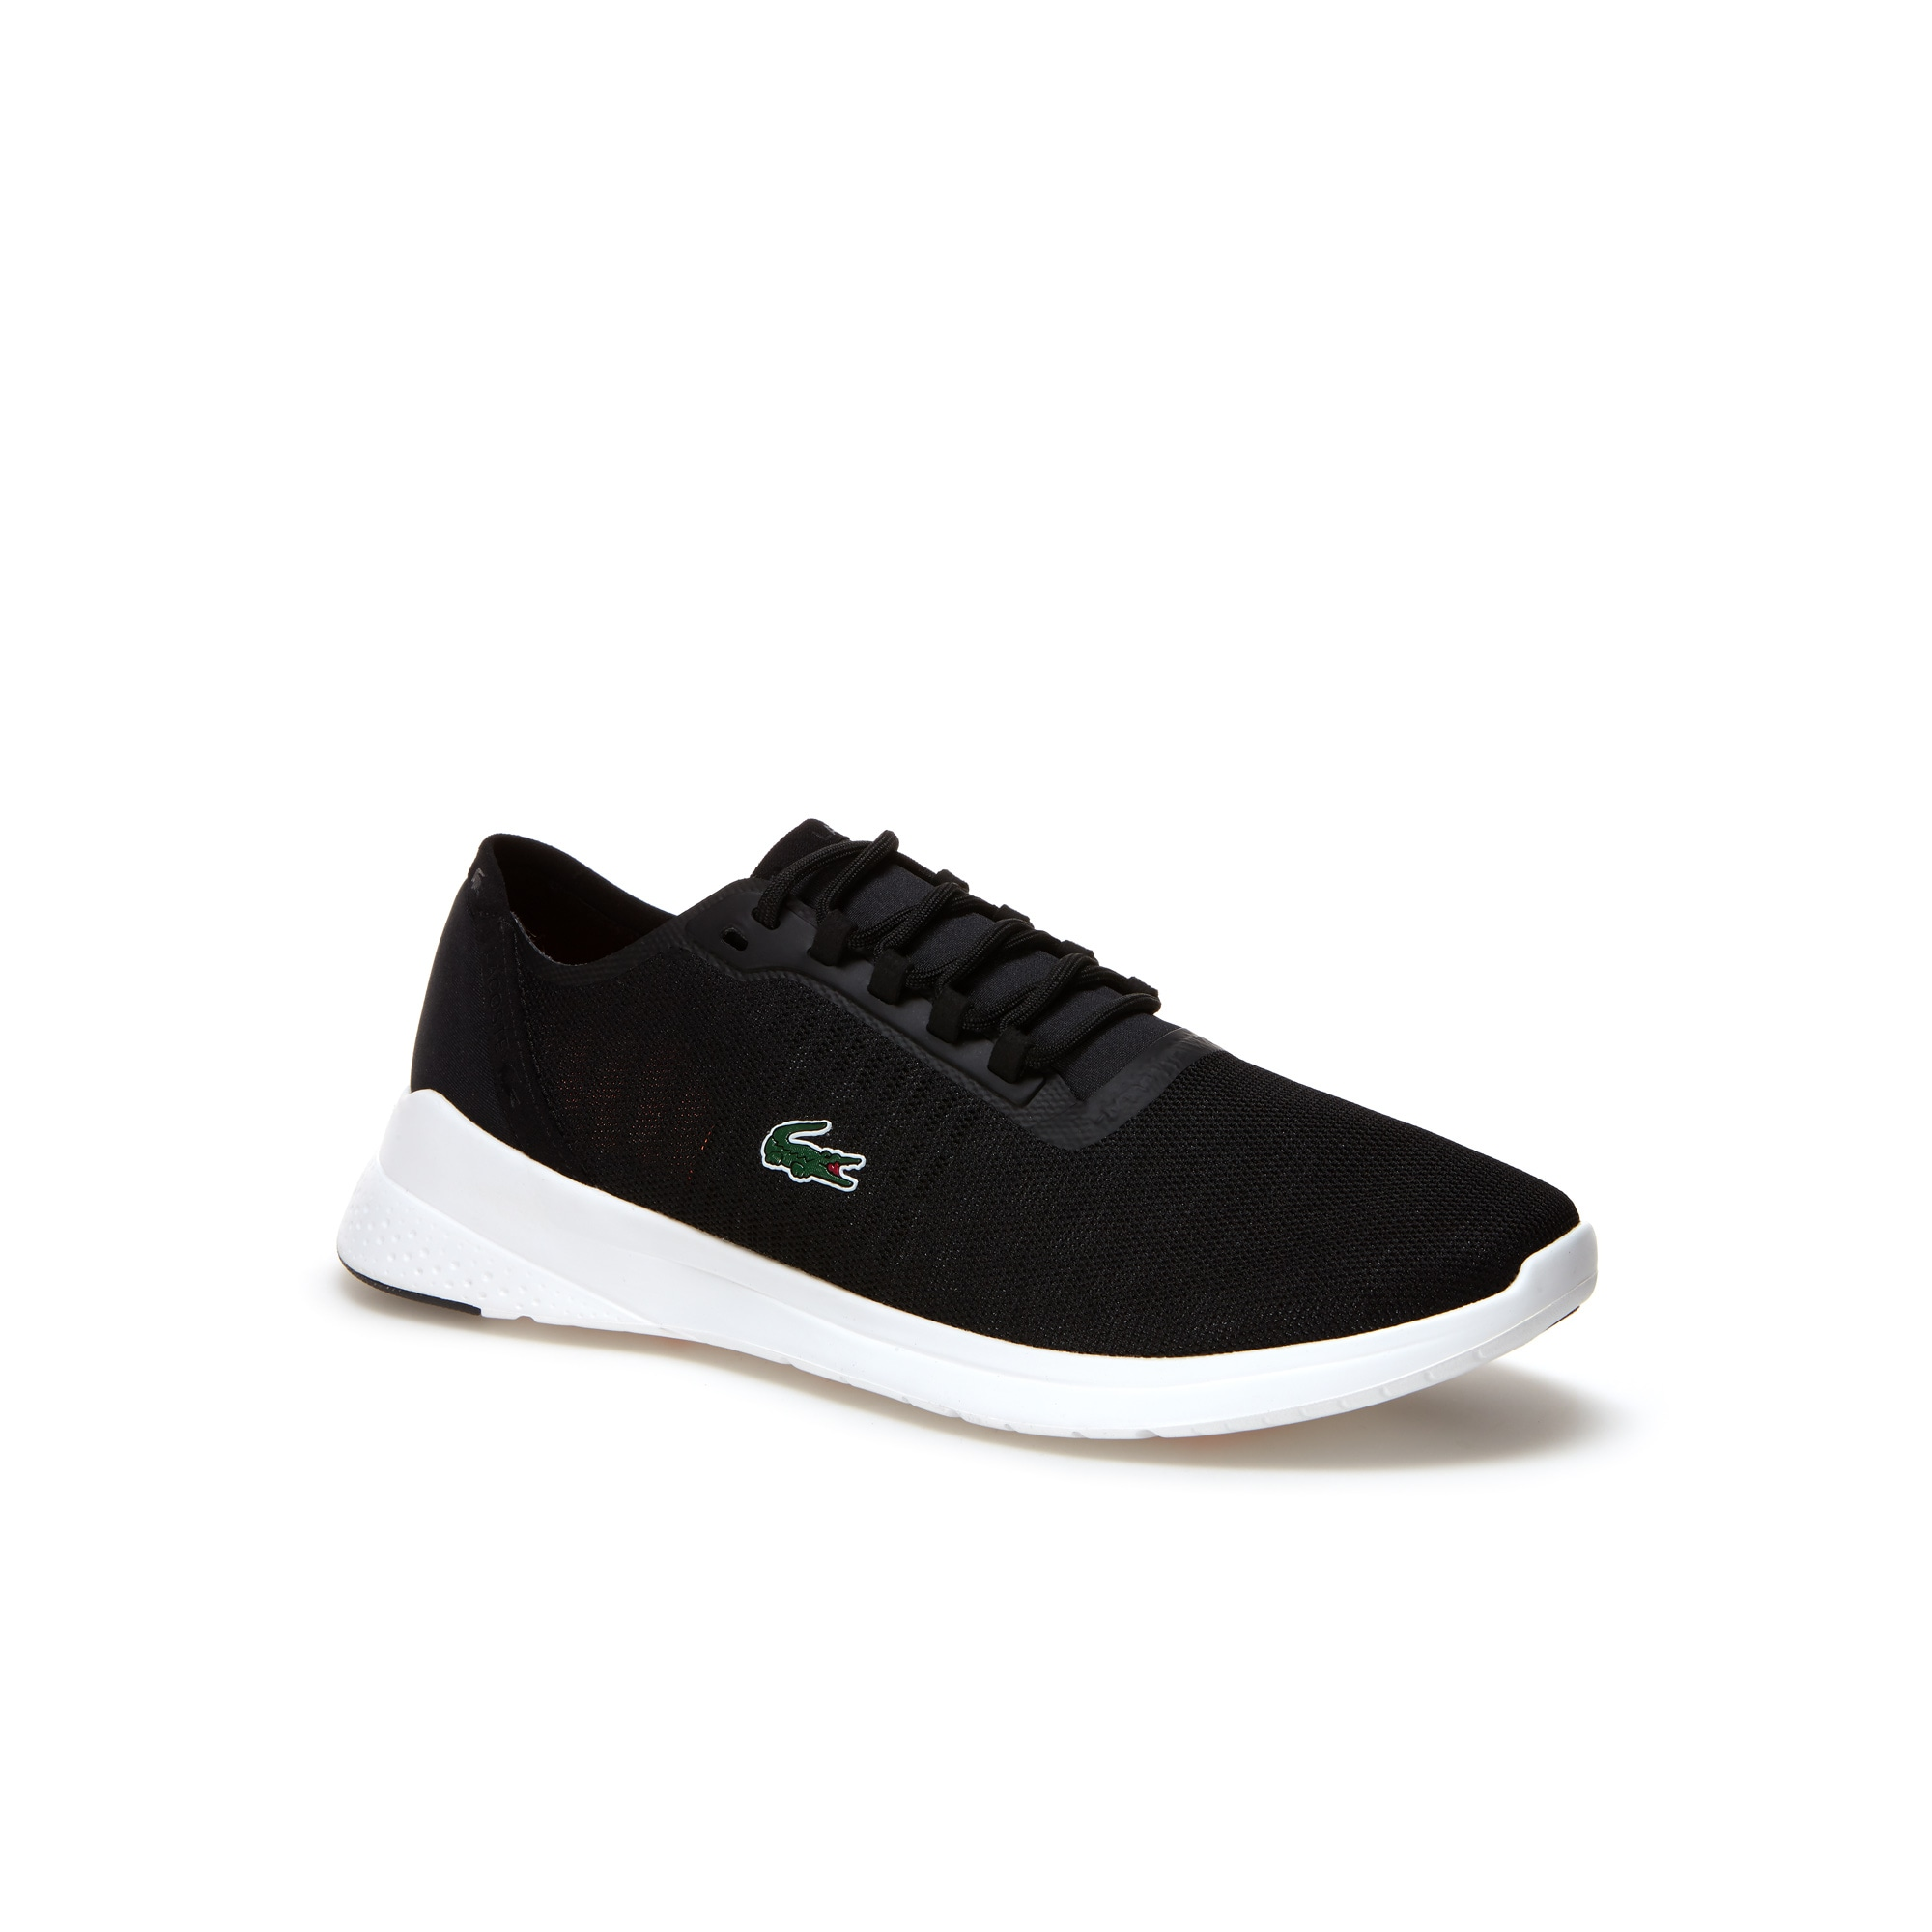 Men's LT Fit Textile Trainers with EVA outsole